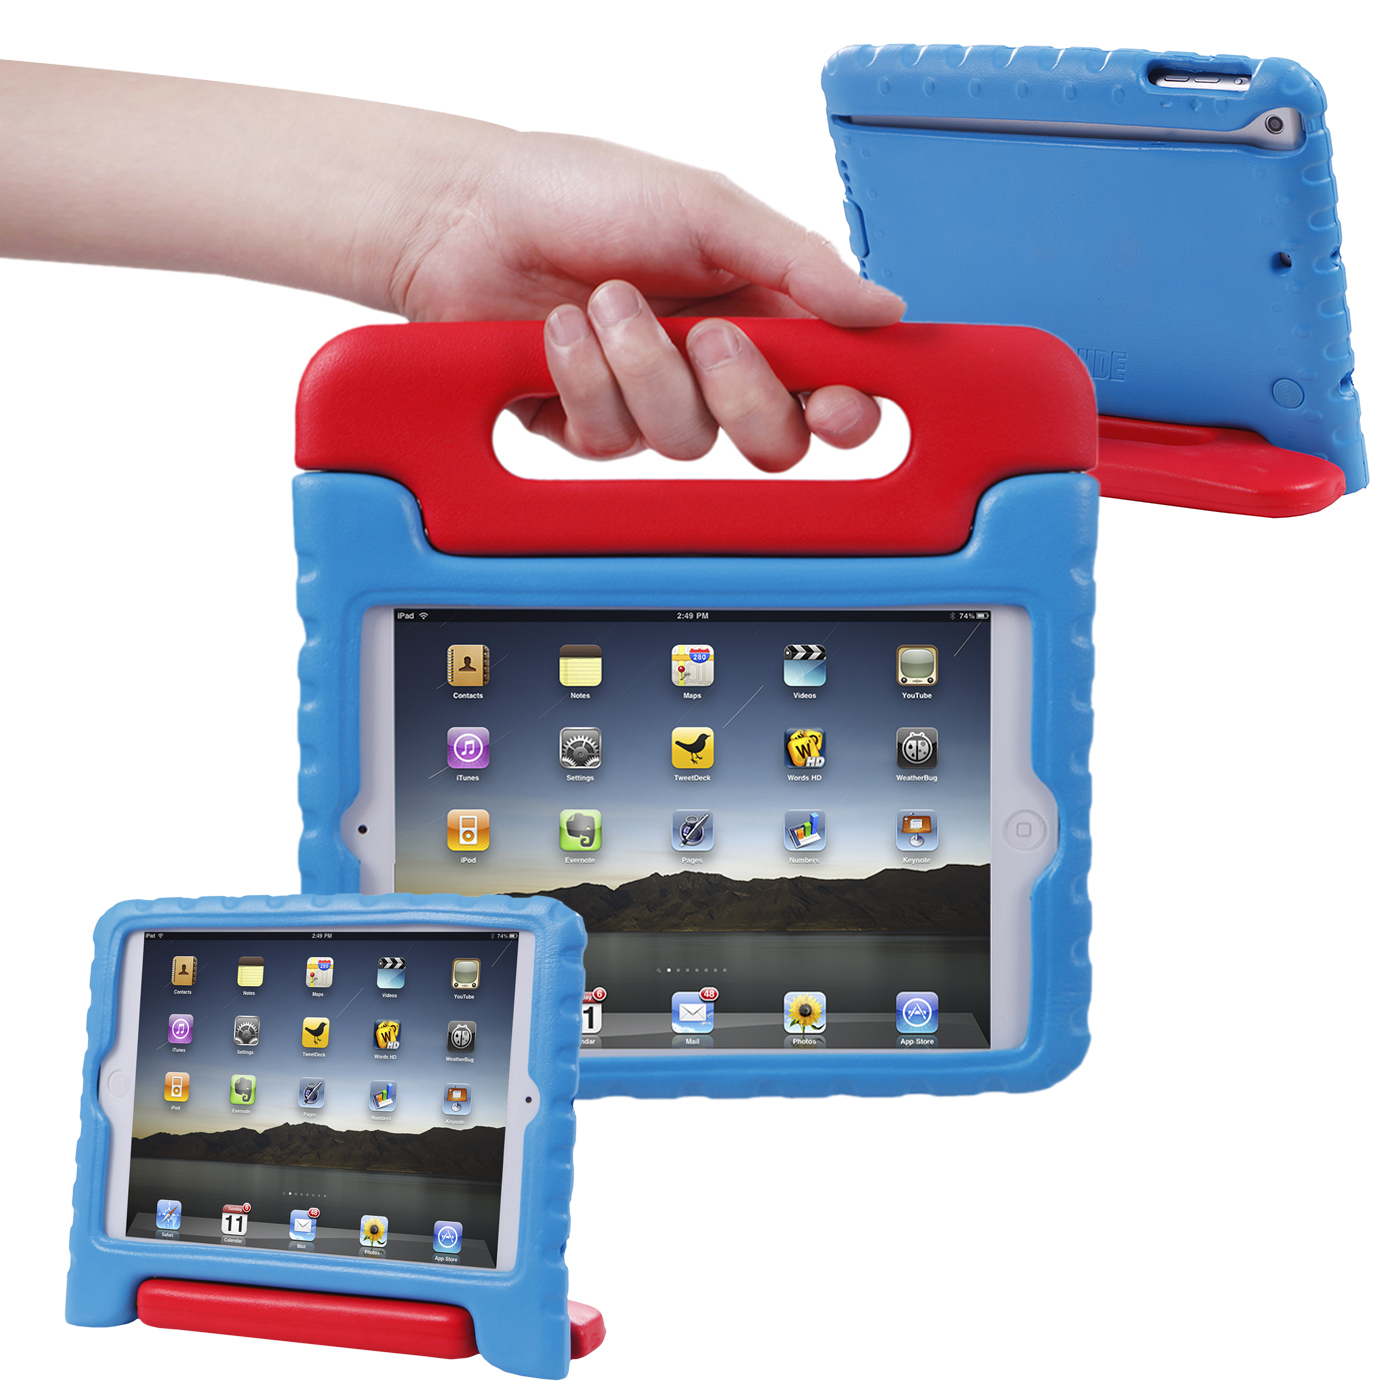 Hde Ipad Mini 2 3 Case For Kids Rugged Heavy Duty Drop Proof Children Toy Protective Shockproof Cover Handle Stand Le 1 Retina Red